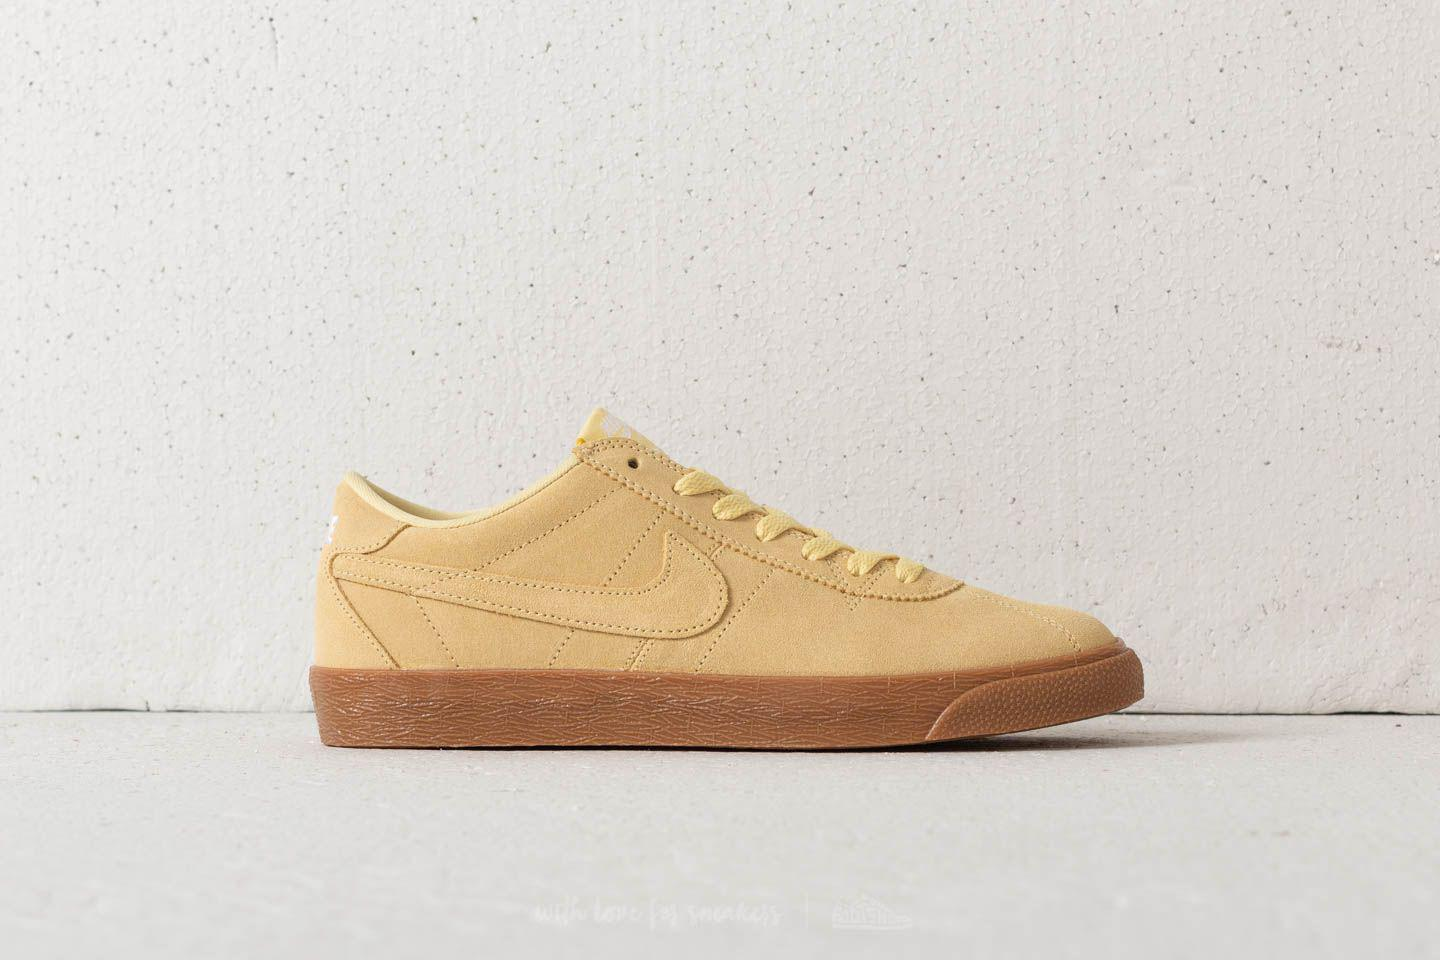 584da88b01bc Lyst - Nike Sb Bruin Zoom Premium Se Lemon Wash  Lemon Wash-white ...